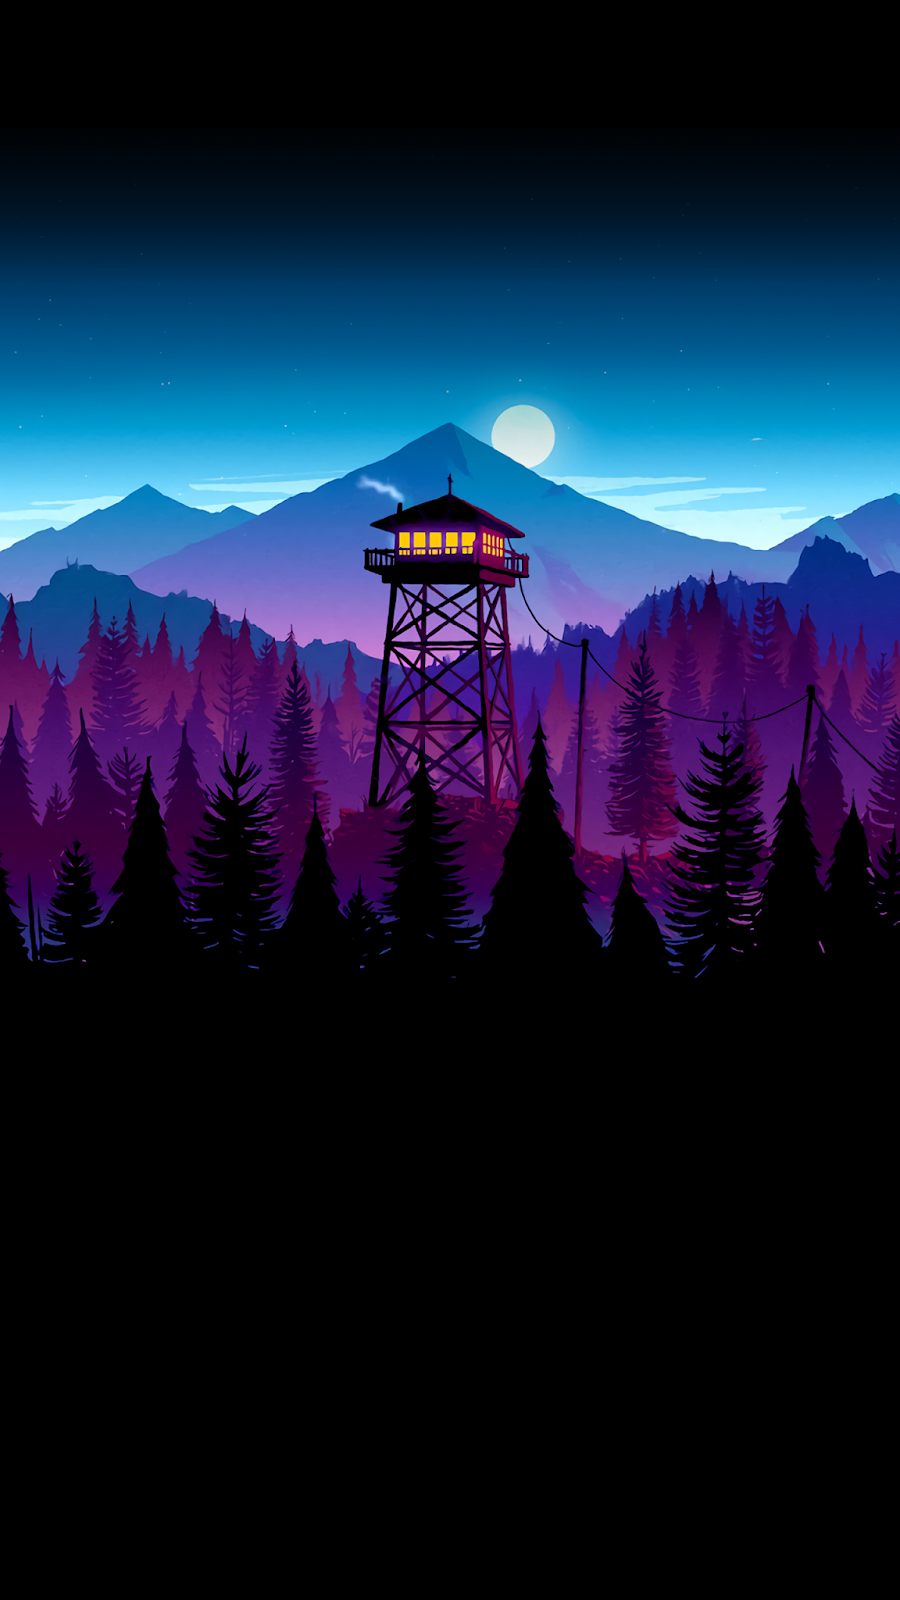 Firewatch Night Wallpaper for (Saving battery for Amoled display)